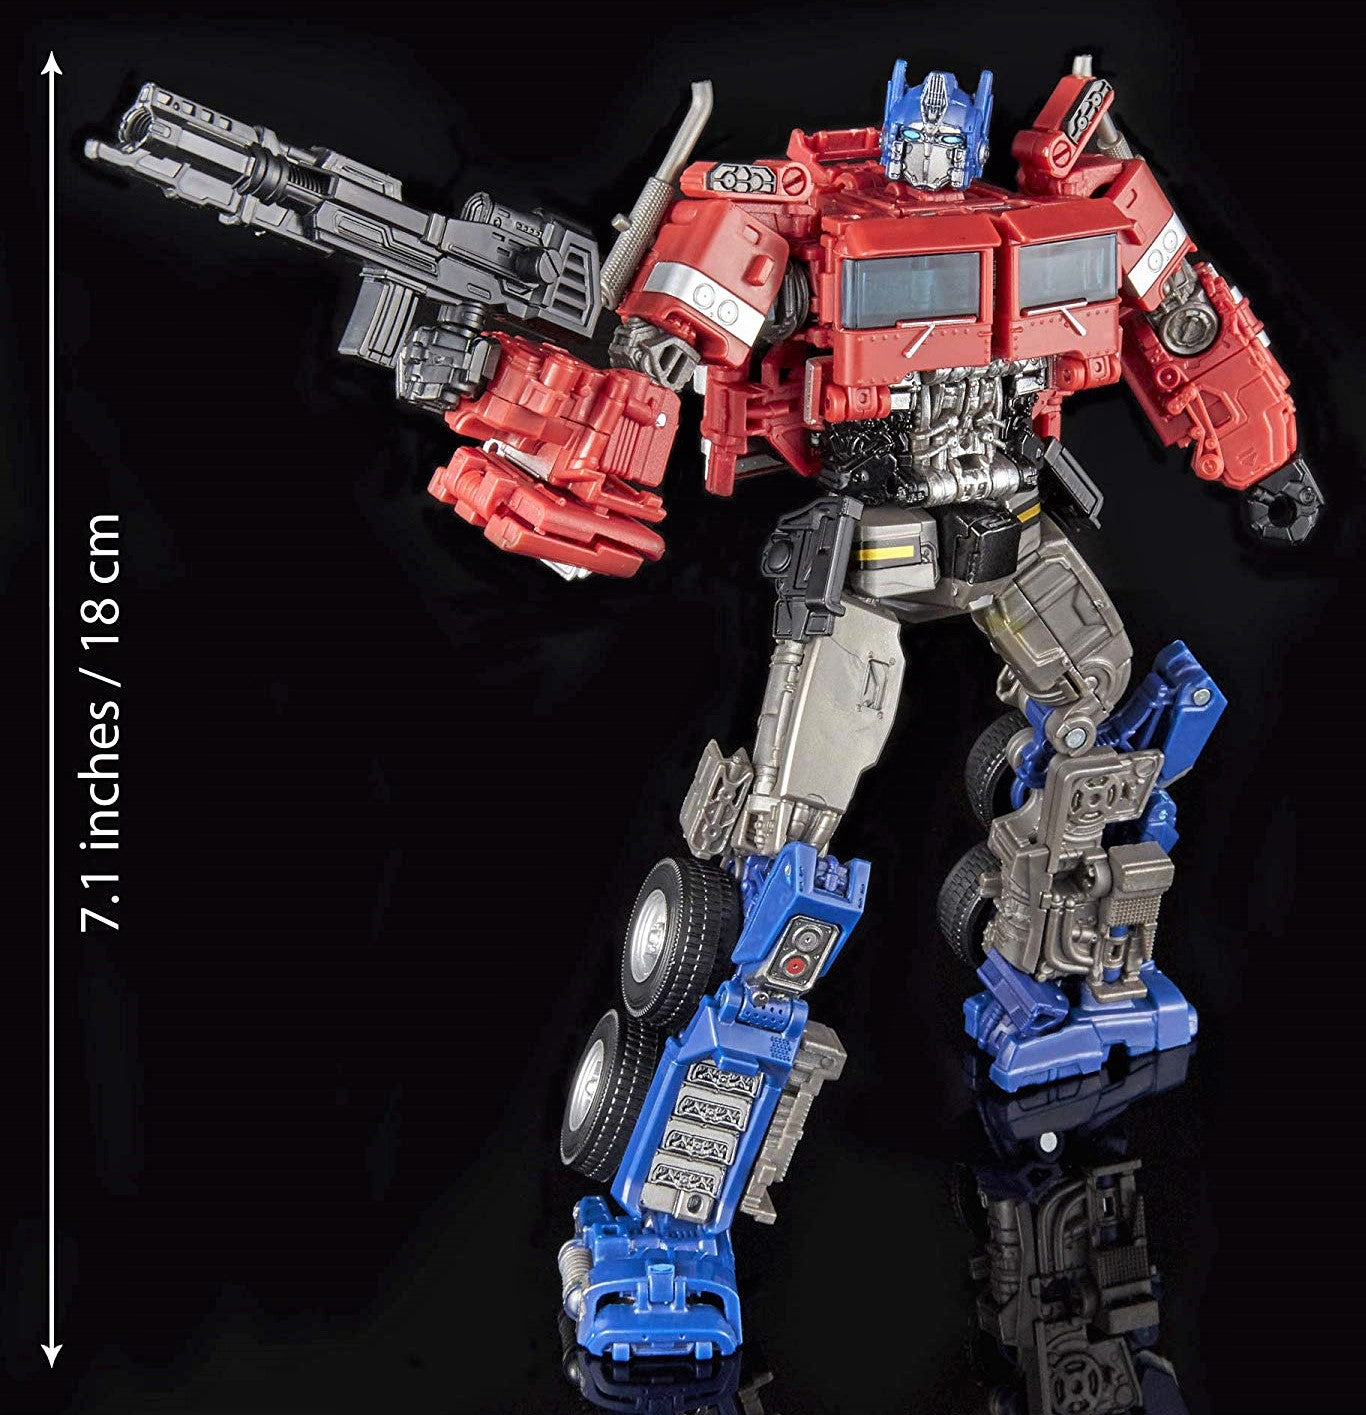 Transformers: Generations - Studio Series 38 - Voyager Class - Bumblebee Movie - Optimus Prime (E4629)